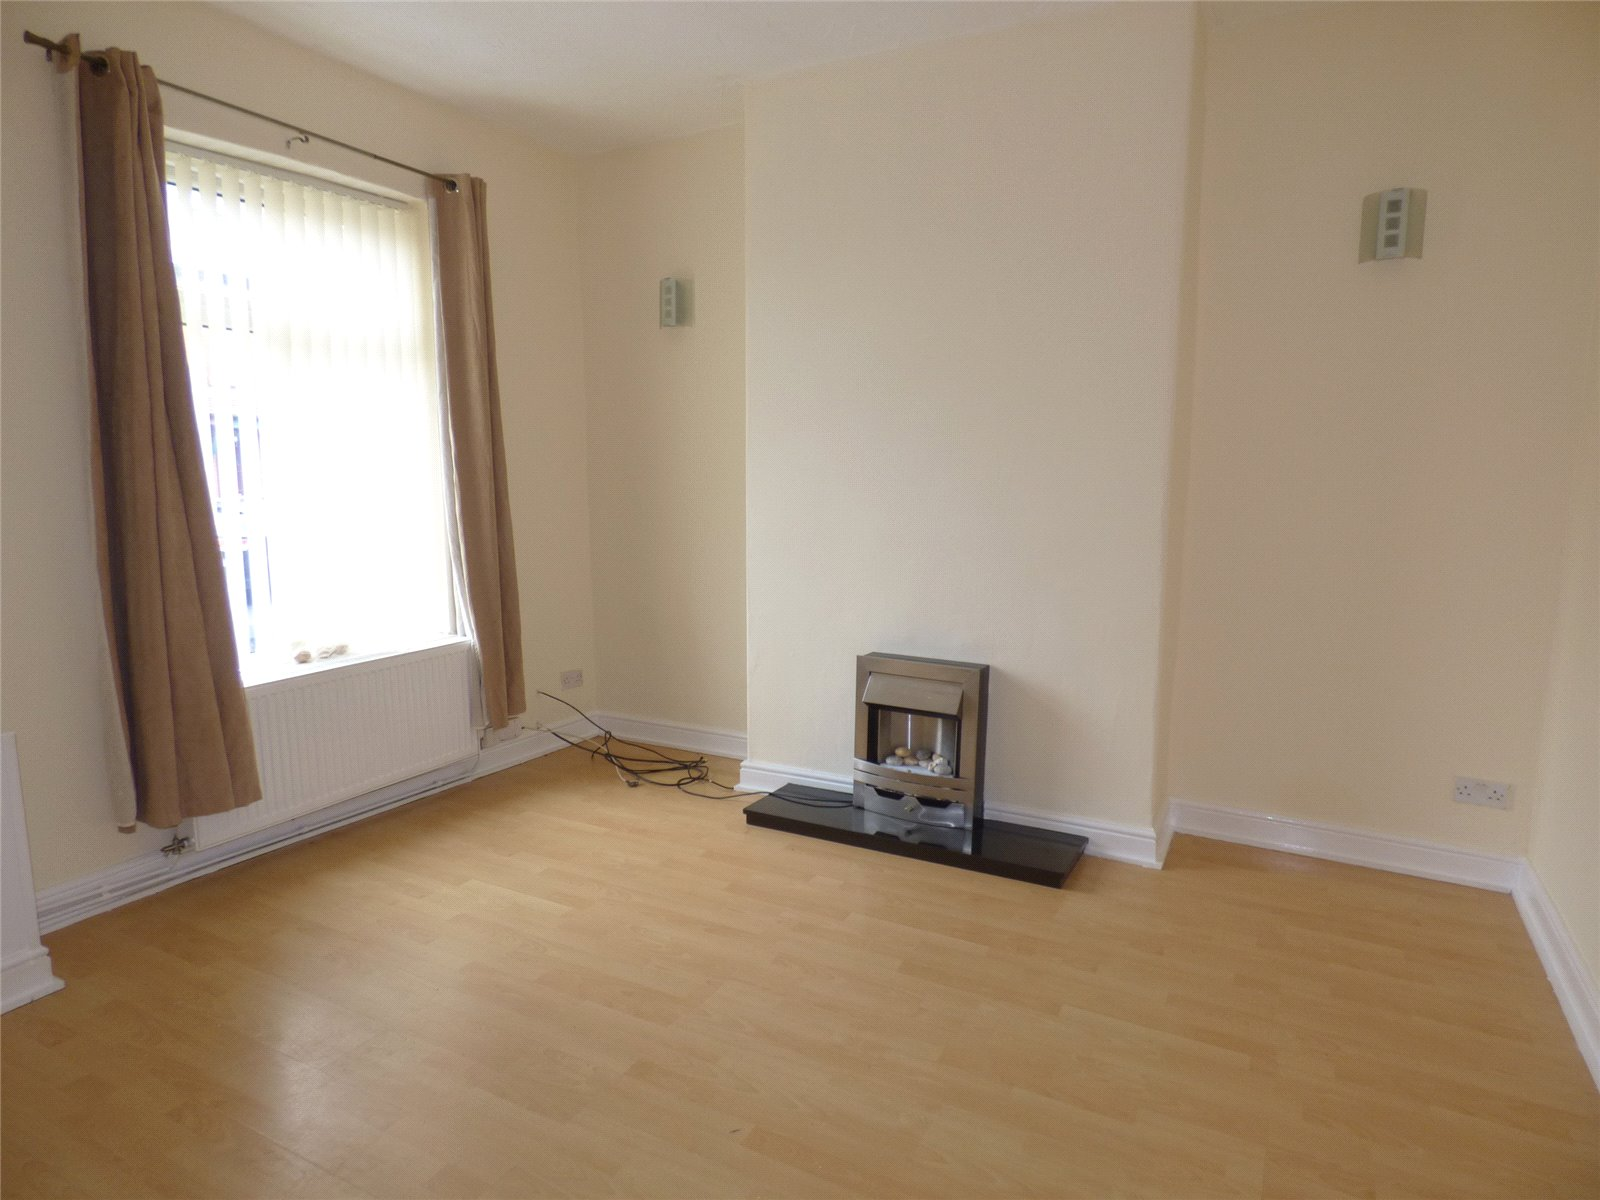 2 Bedrooms Terraced House for sale in Hollinhall Street, Greenacres, Oldham, Greater Manchester, OL4